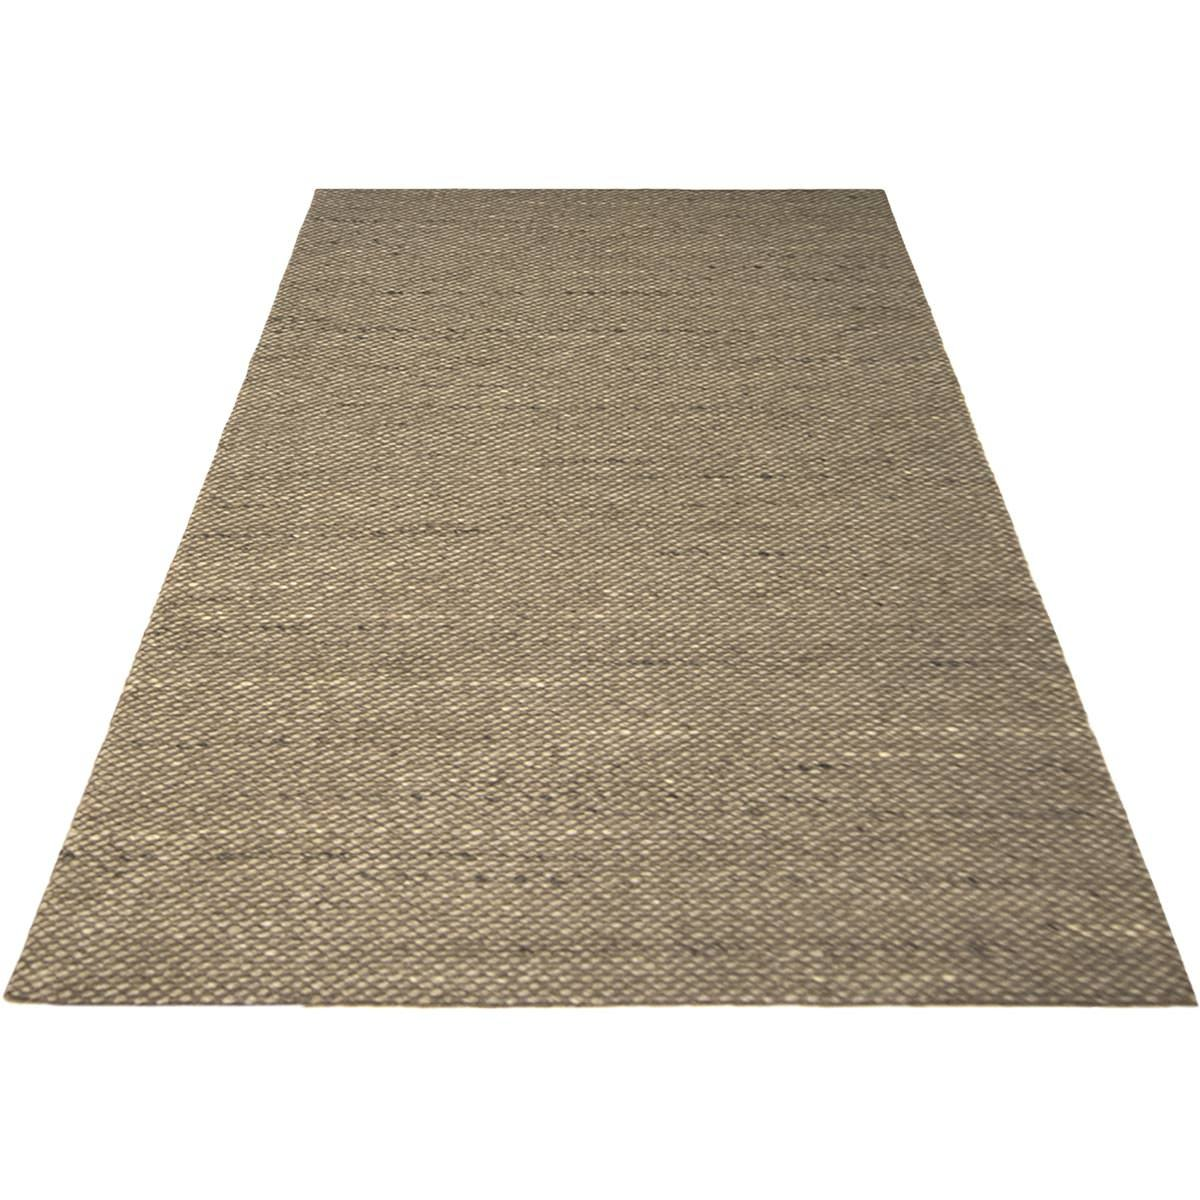 Arava Rug 01 Brown 2